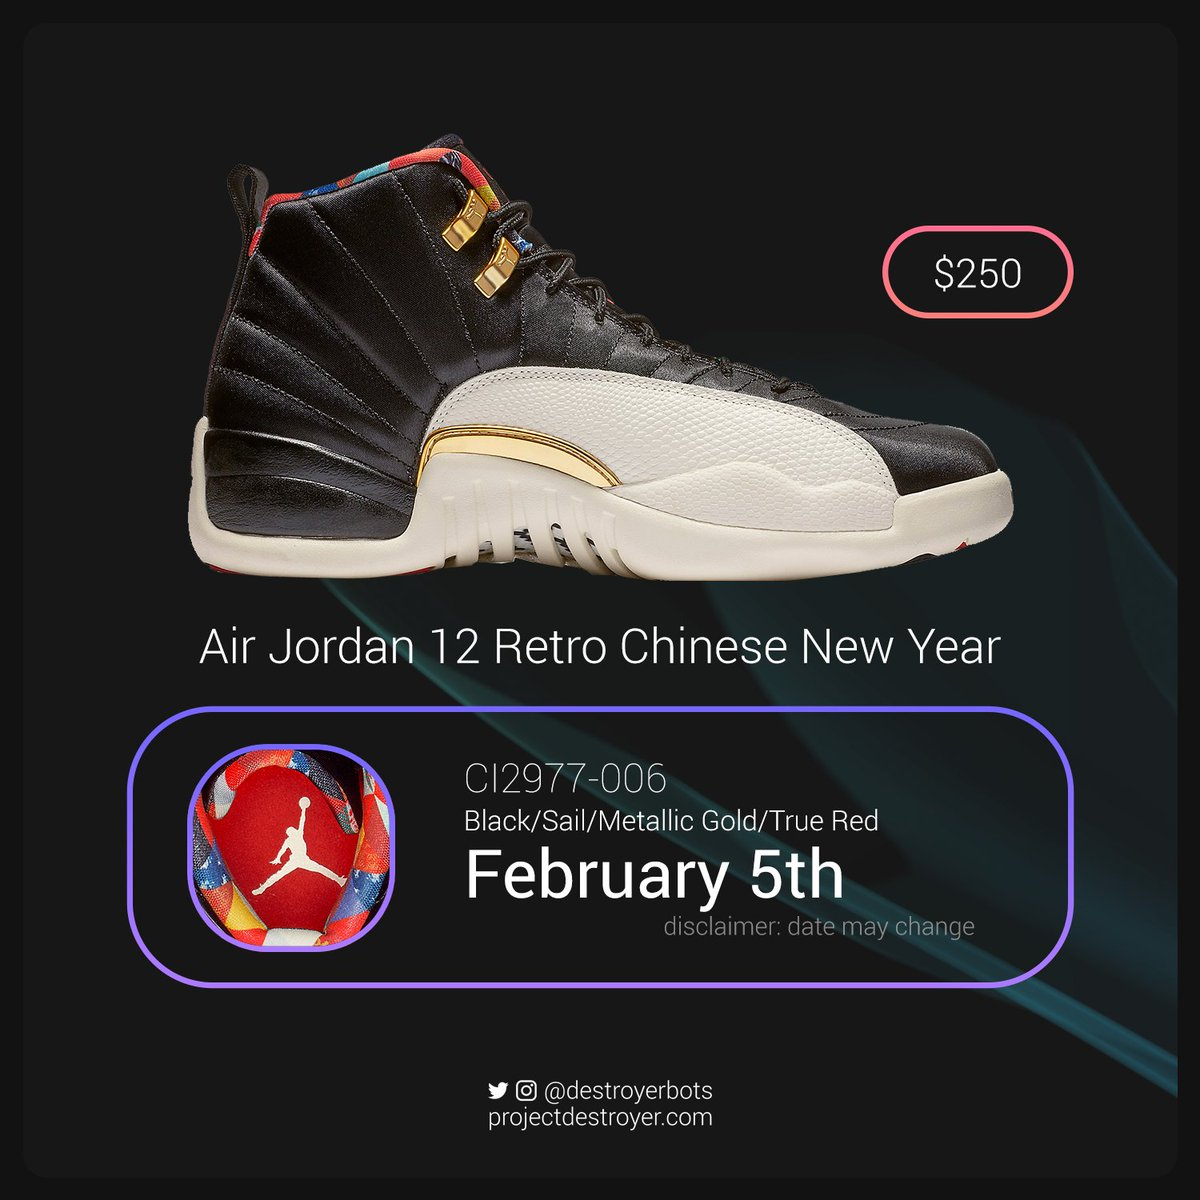 12ef97052754 People who choose to cut away the black upper will have a completely new  color of shoe available to them. - Seanpic.twitter.com JSQS3oiaWq